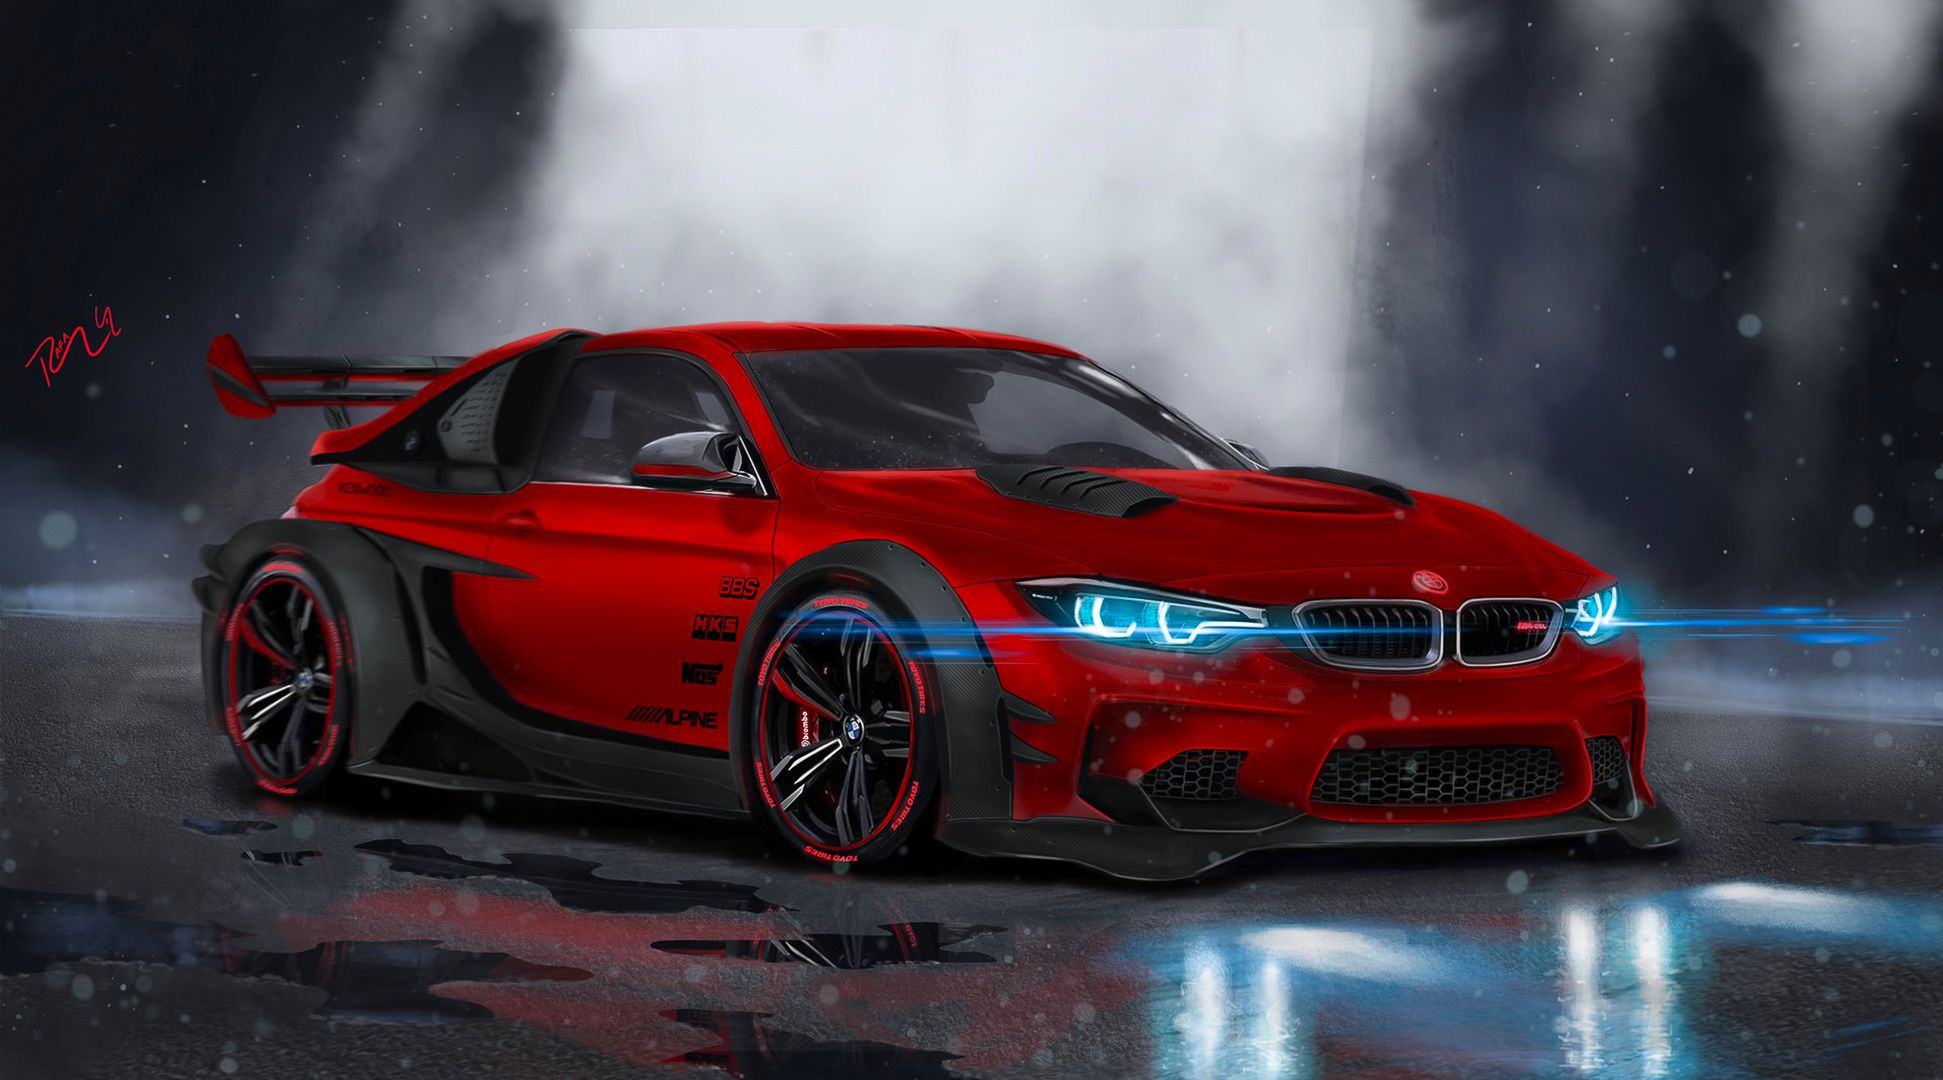 79 bmw m4 hd wallpapers | background images - wallpaper abyss